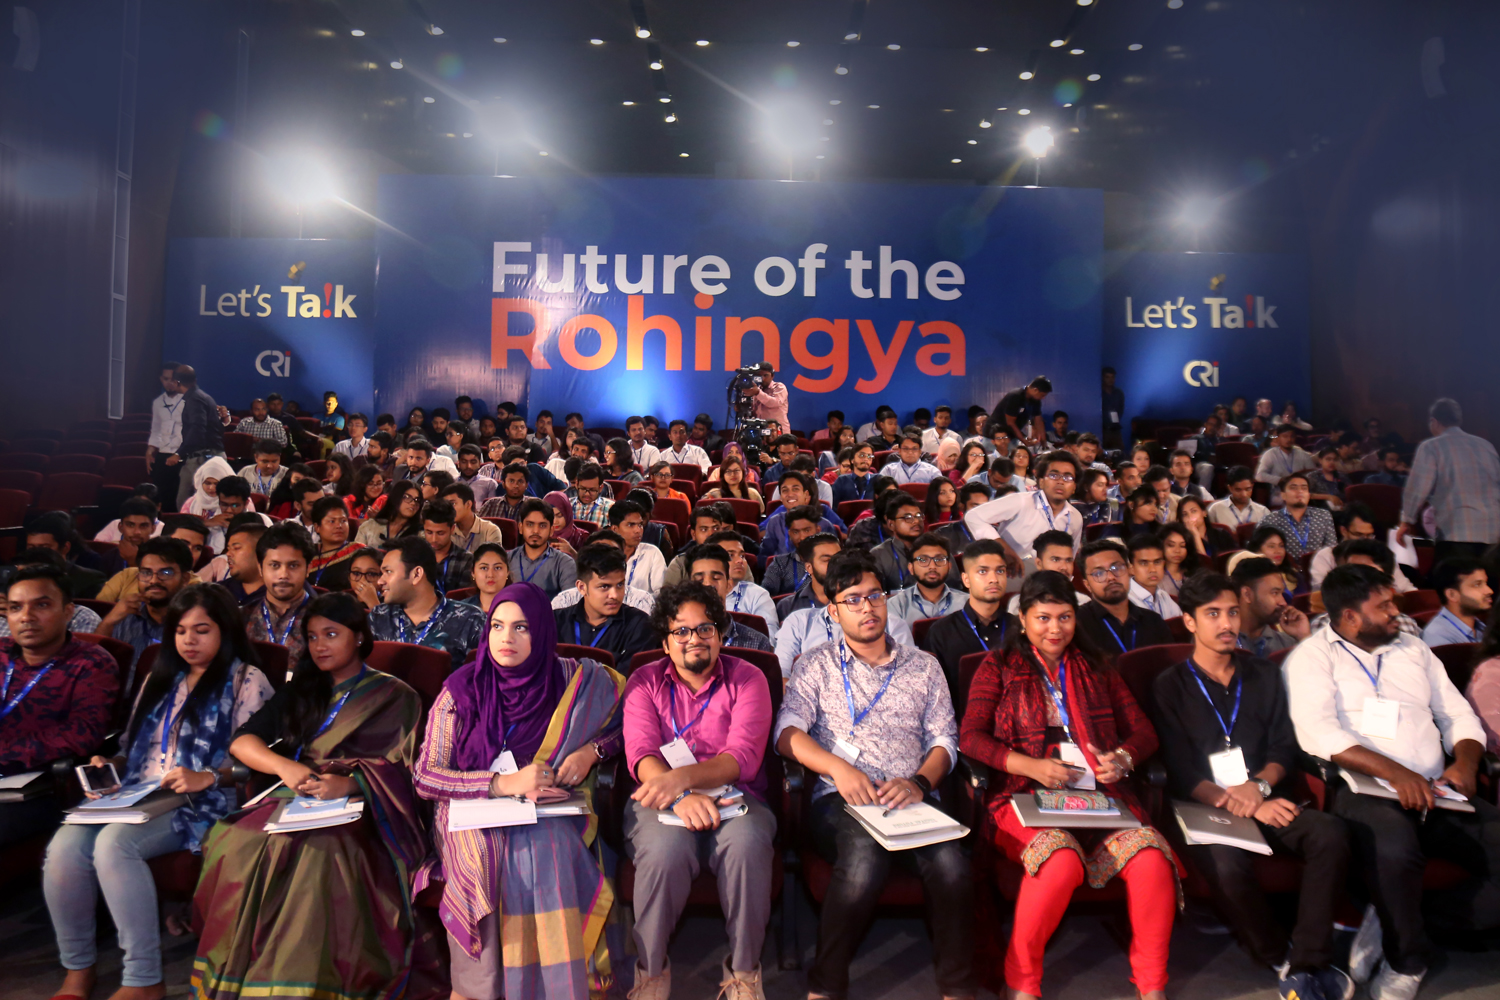 Let's Talk on Future of the Rohingya